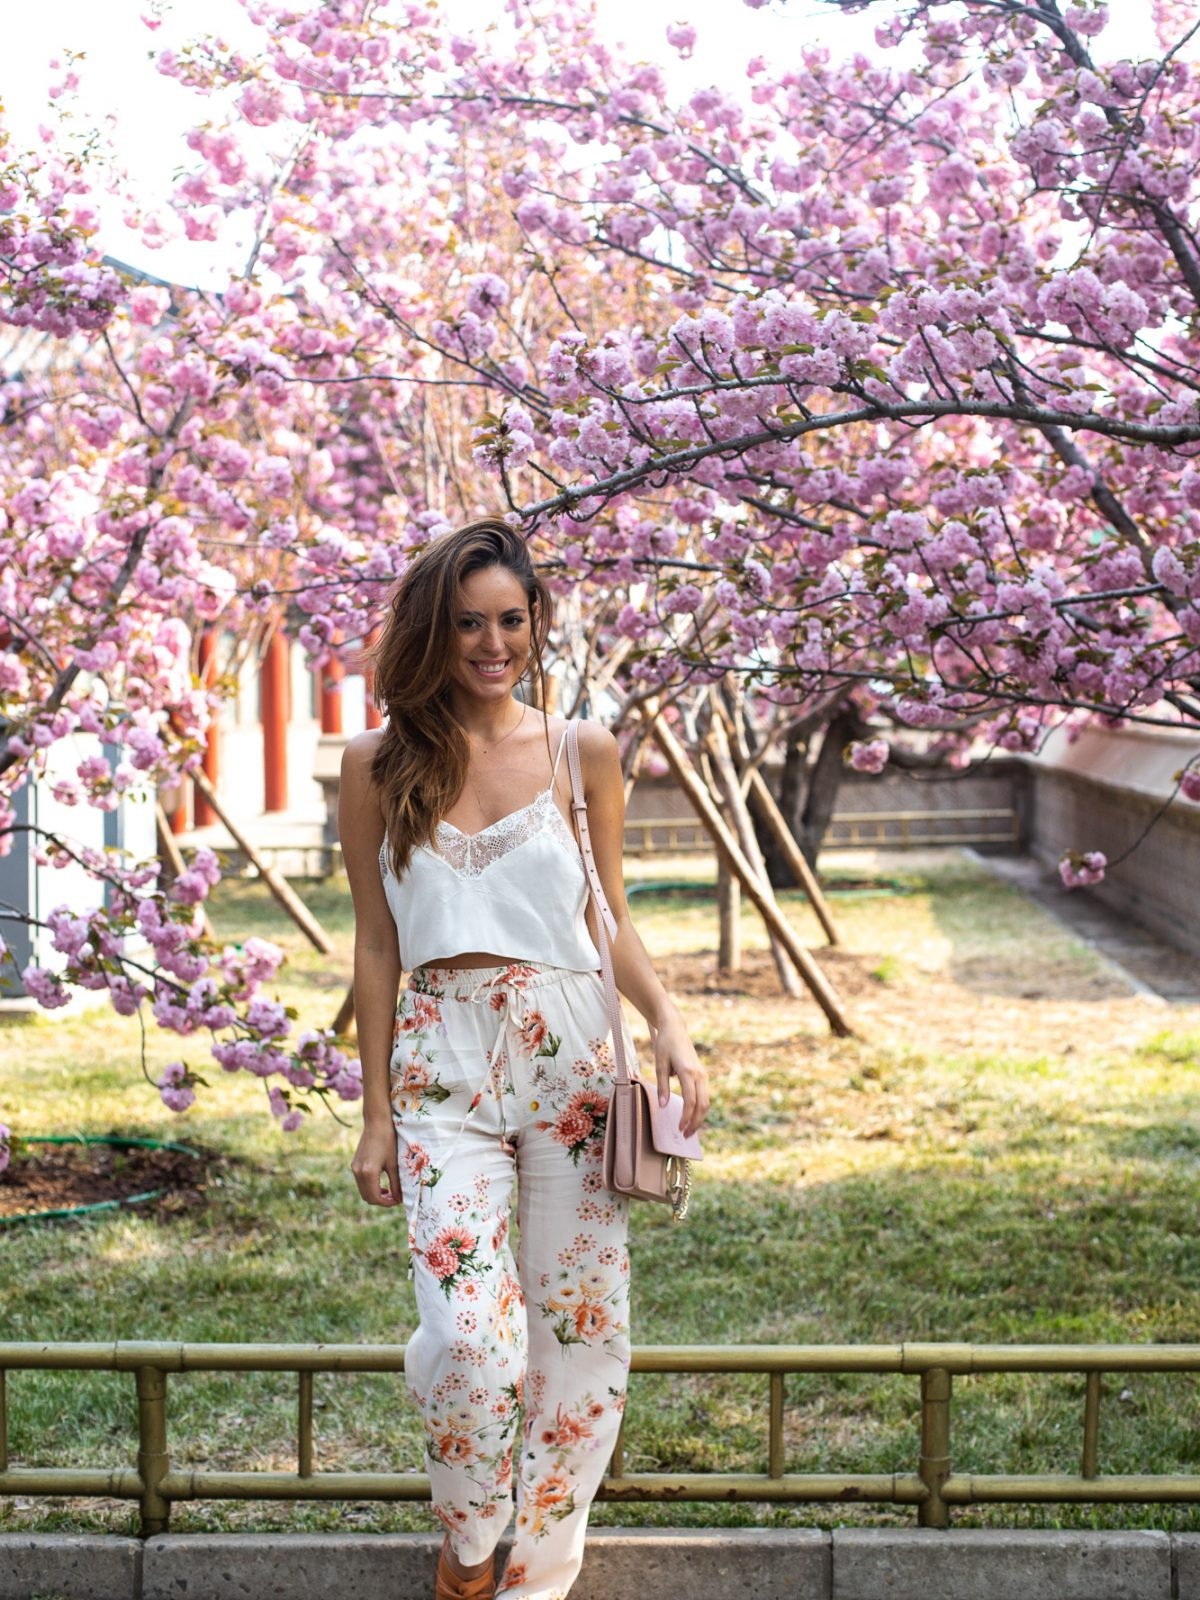 cherry blossoms in china, cherry blossoms in beijing, summer palace beijing, pretty places to take photos in beijing china, free people Sweet Carolina Cami, big round sunglasses cheap, spring outfit ideas, feminine outfits that are comfortable